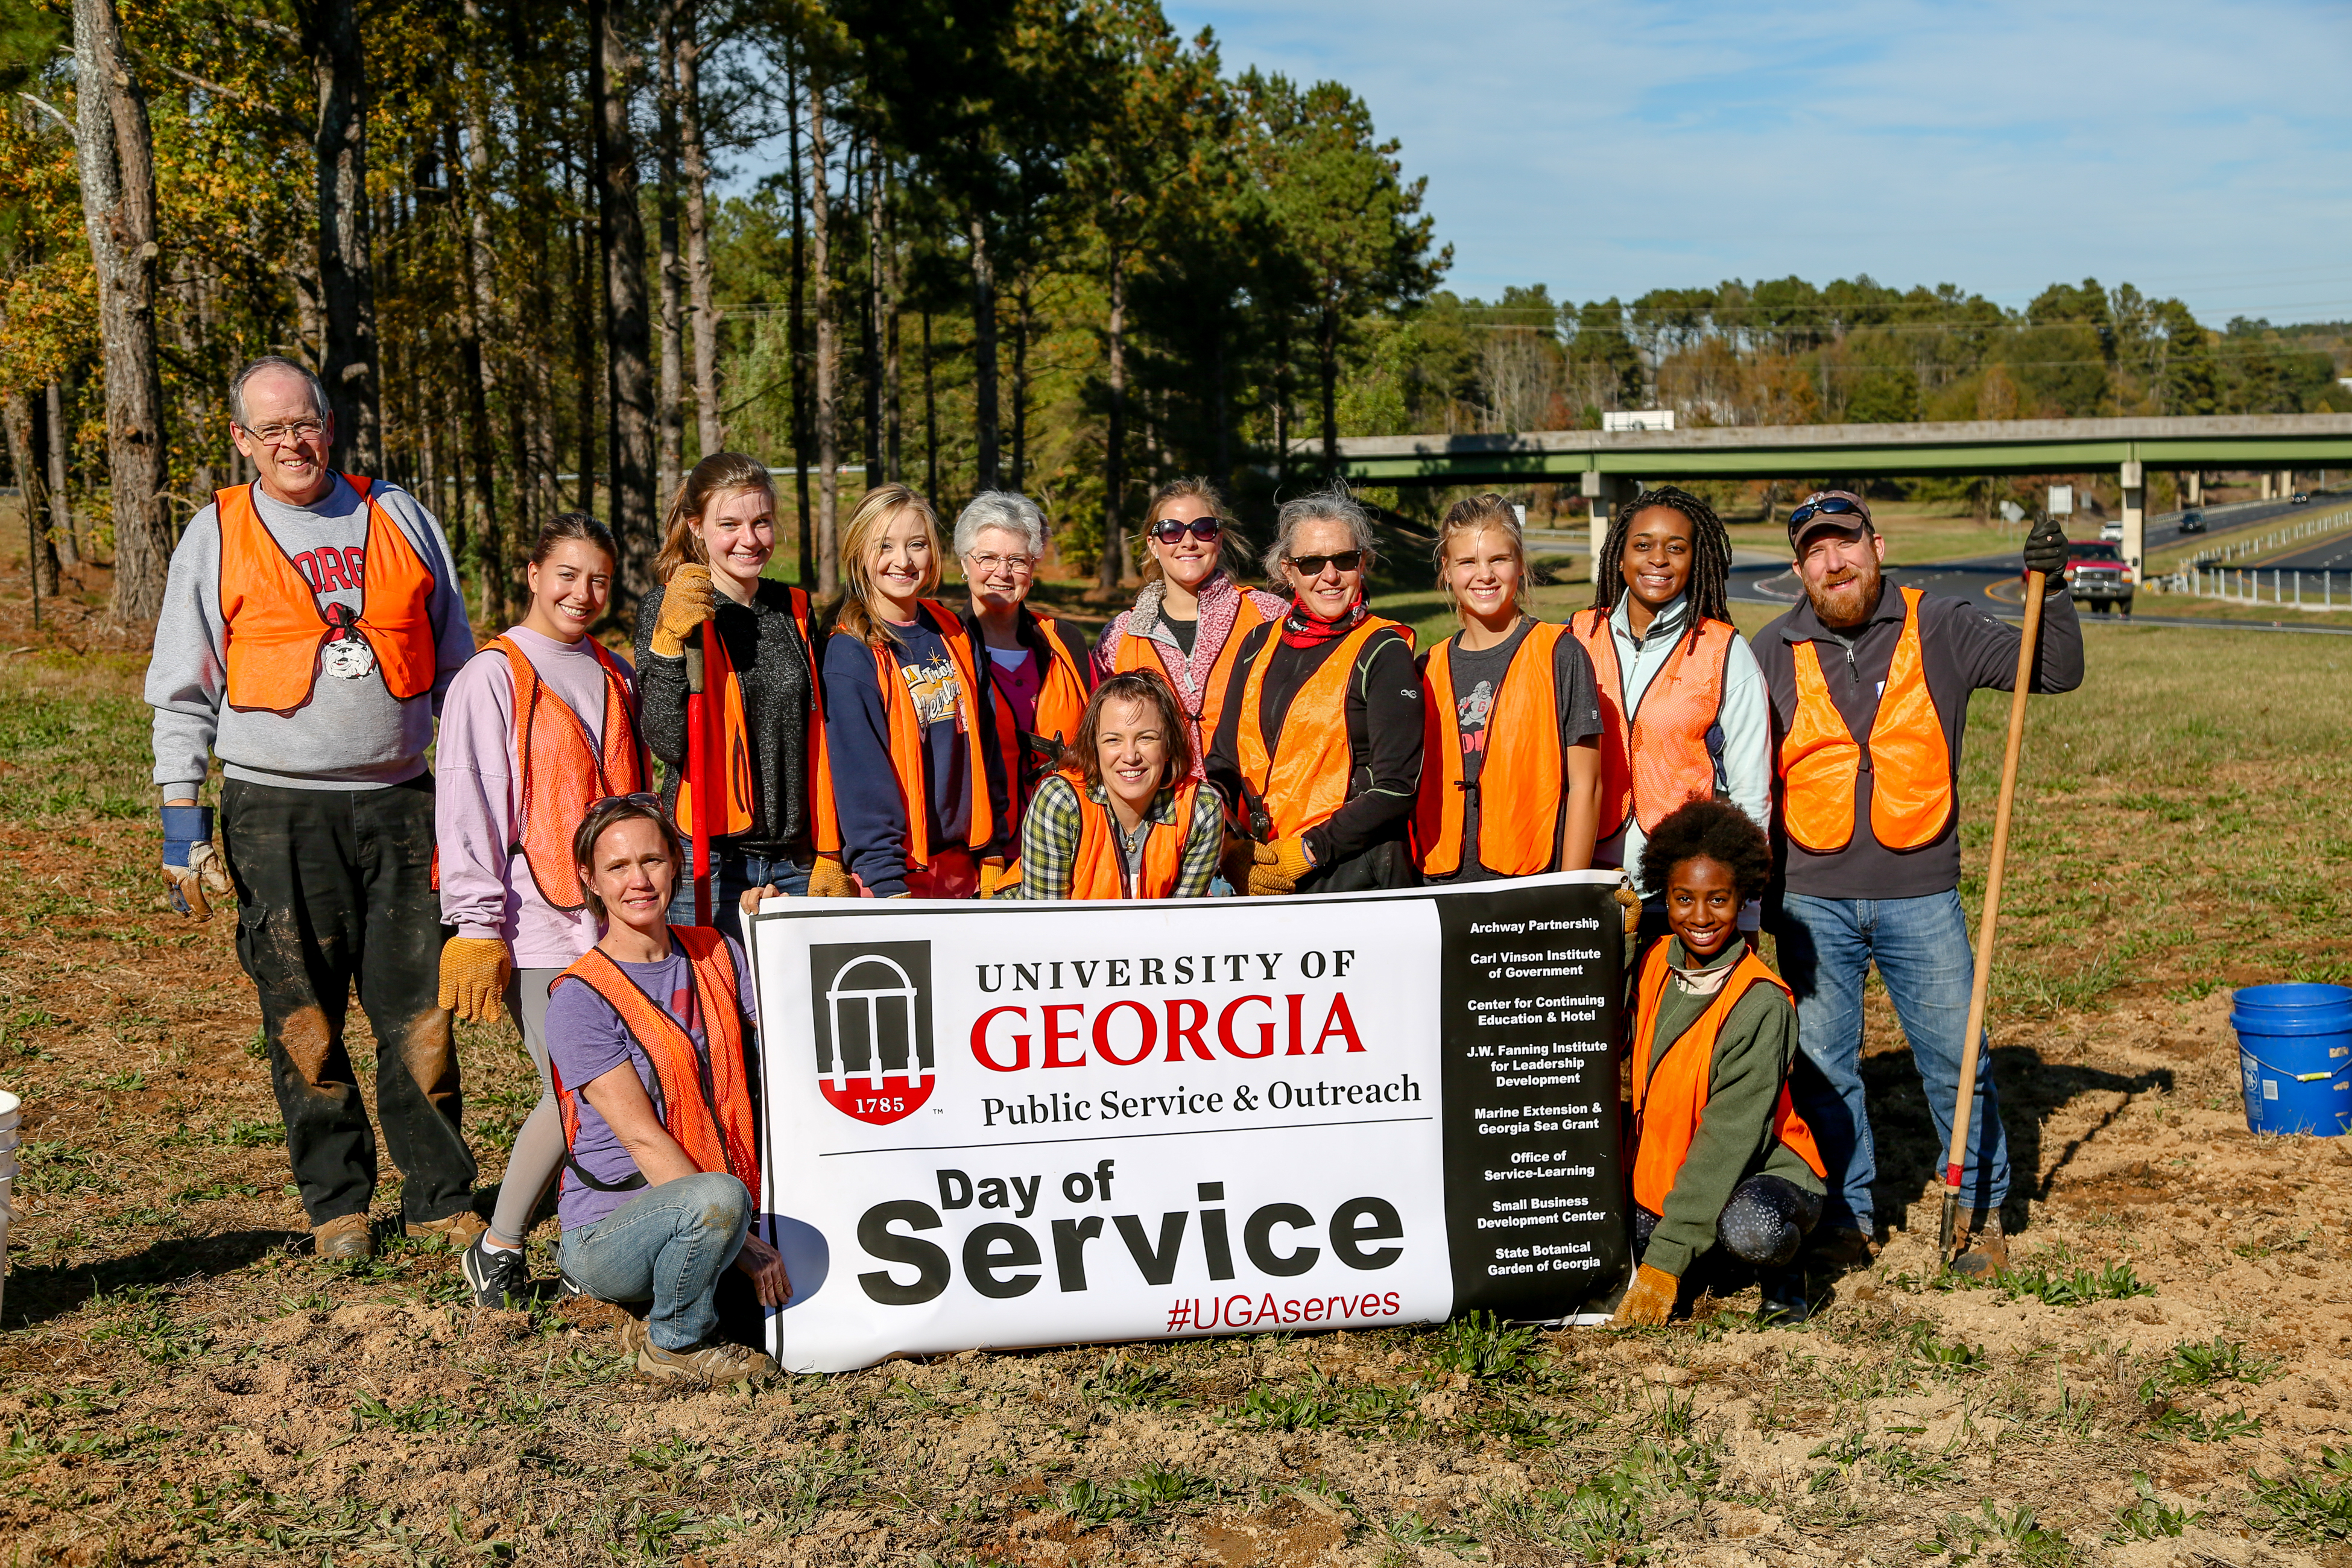 Annual Day of Service connects UGA employees to local nonprofits